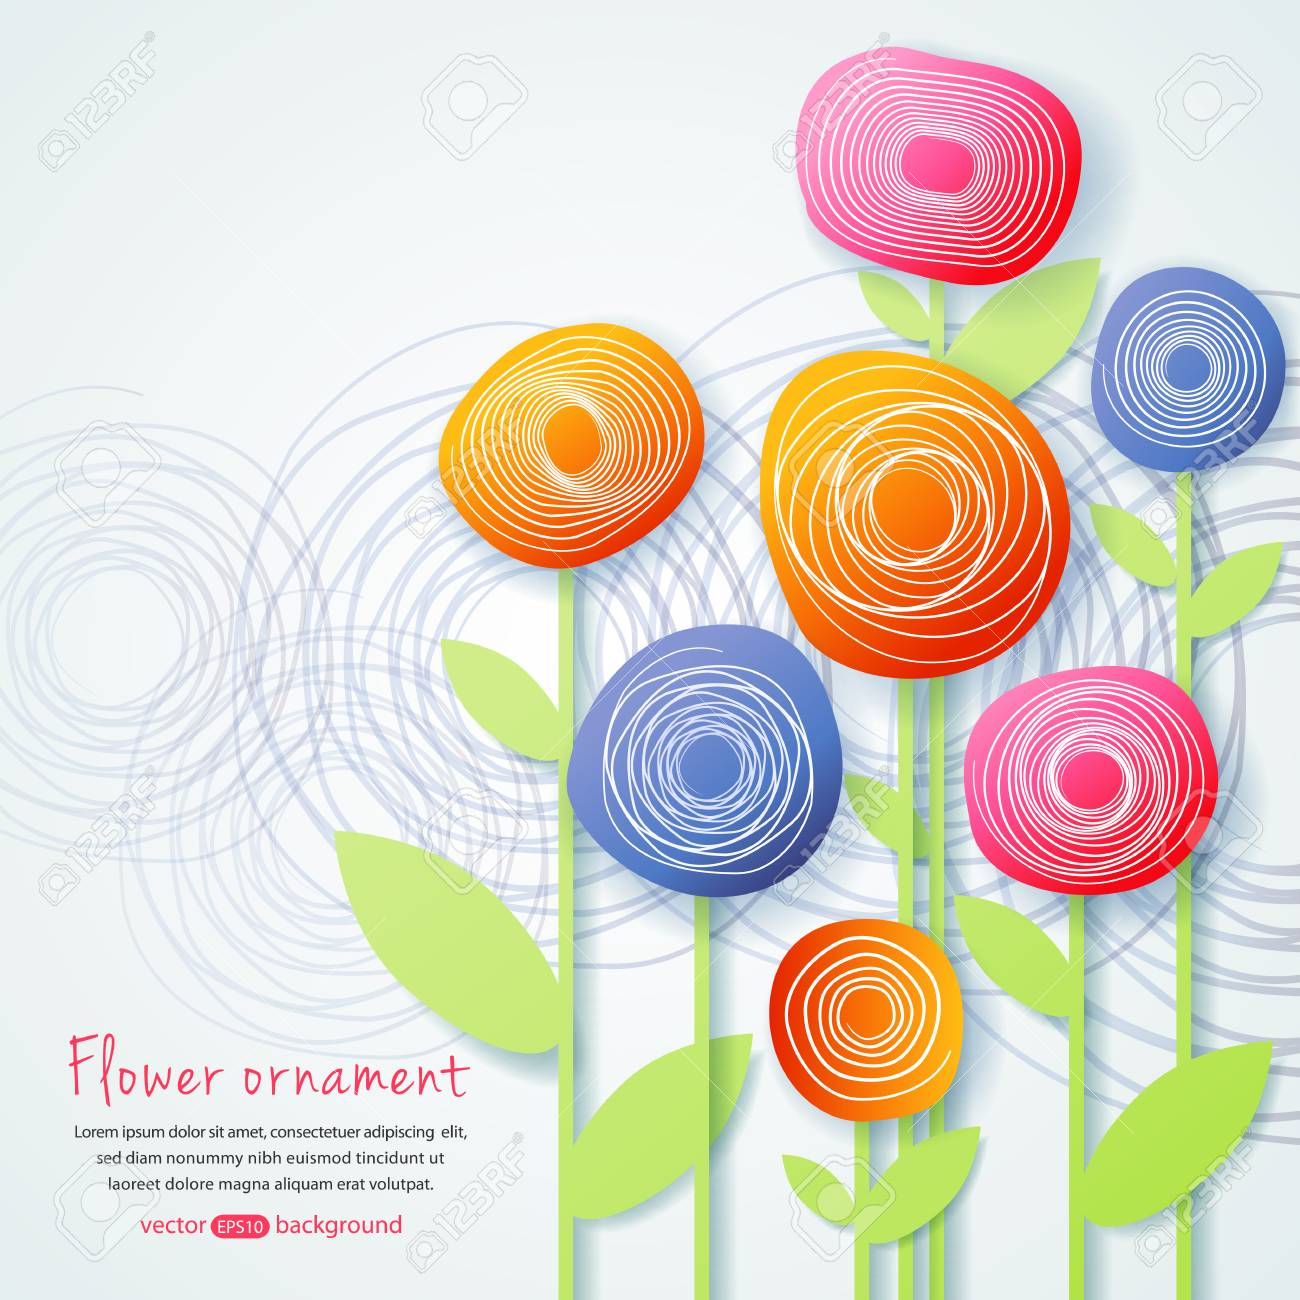 Background With Simple Paper Flowers The Illustration Contains